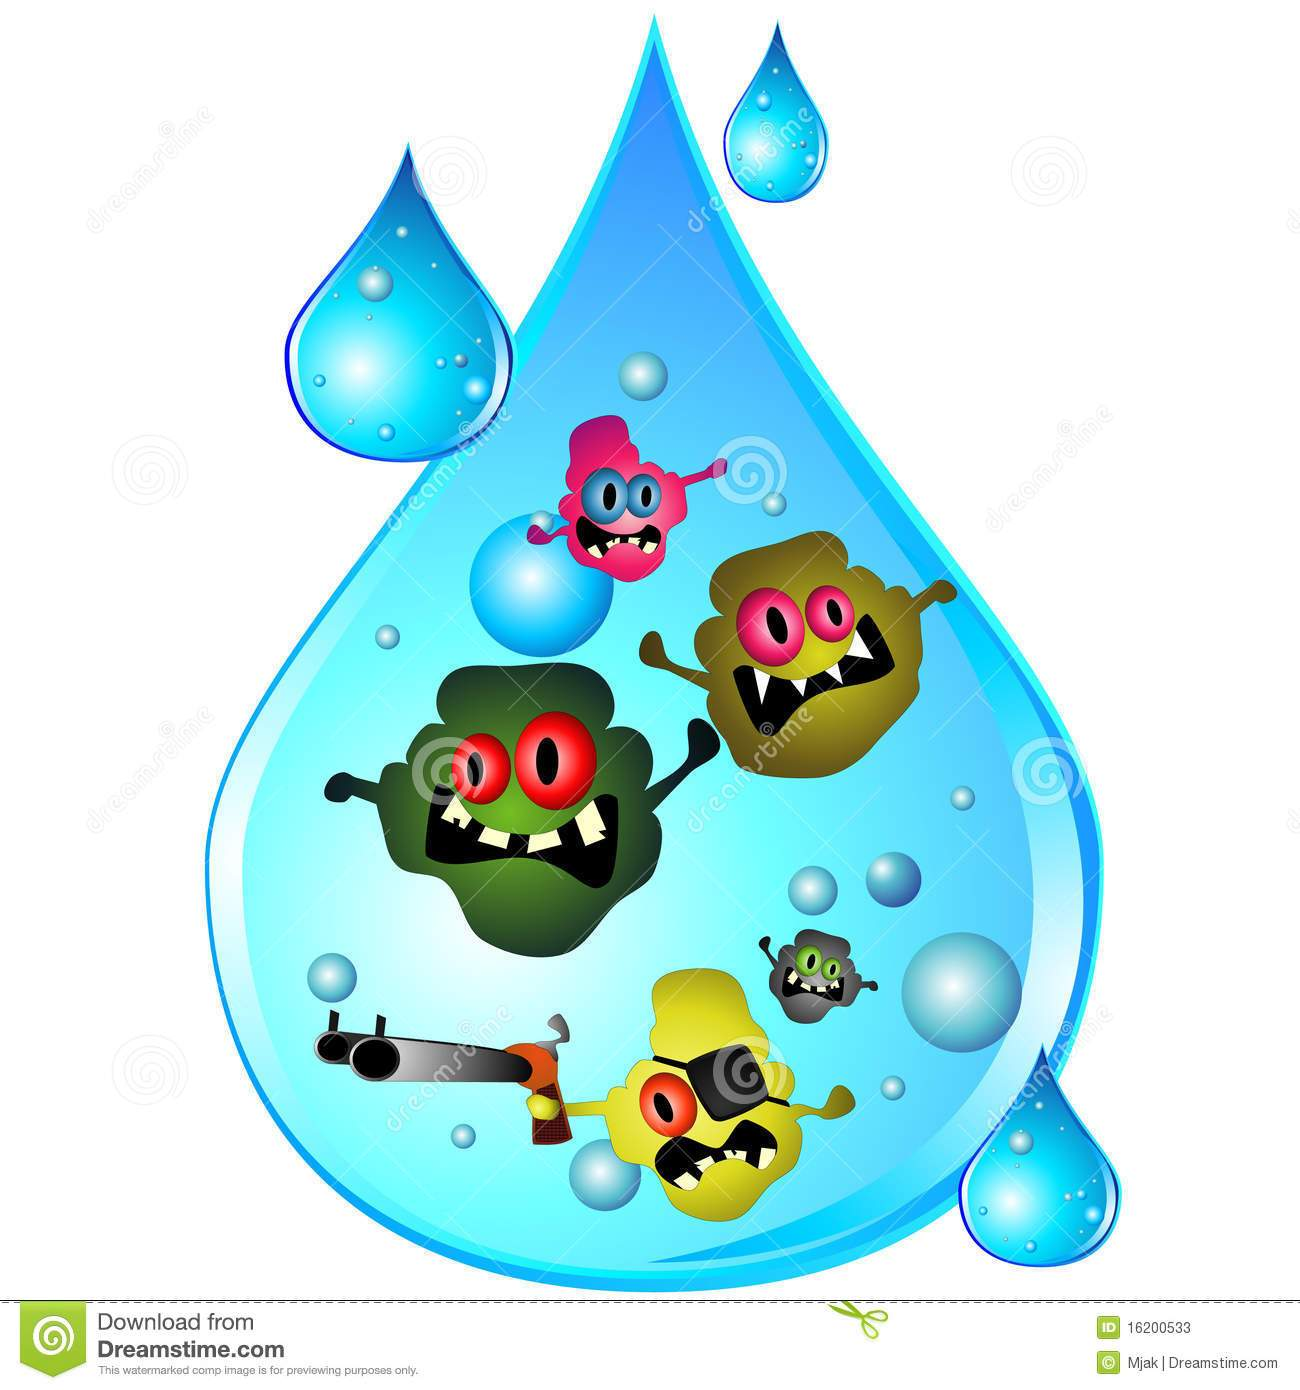 Dirty water clipart 2 » Clipart Portal.